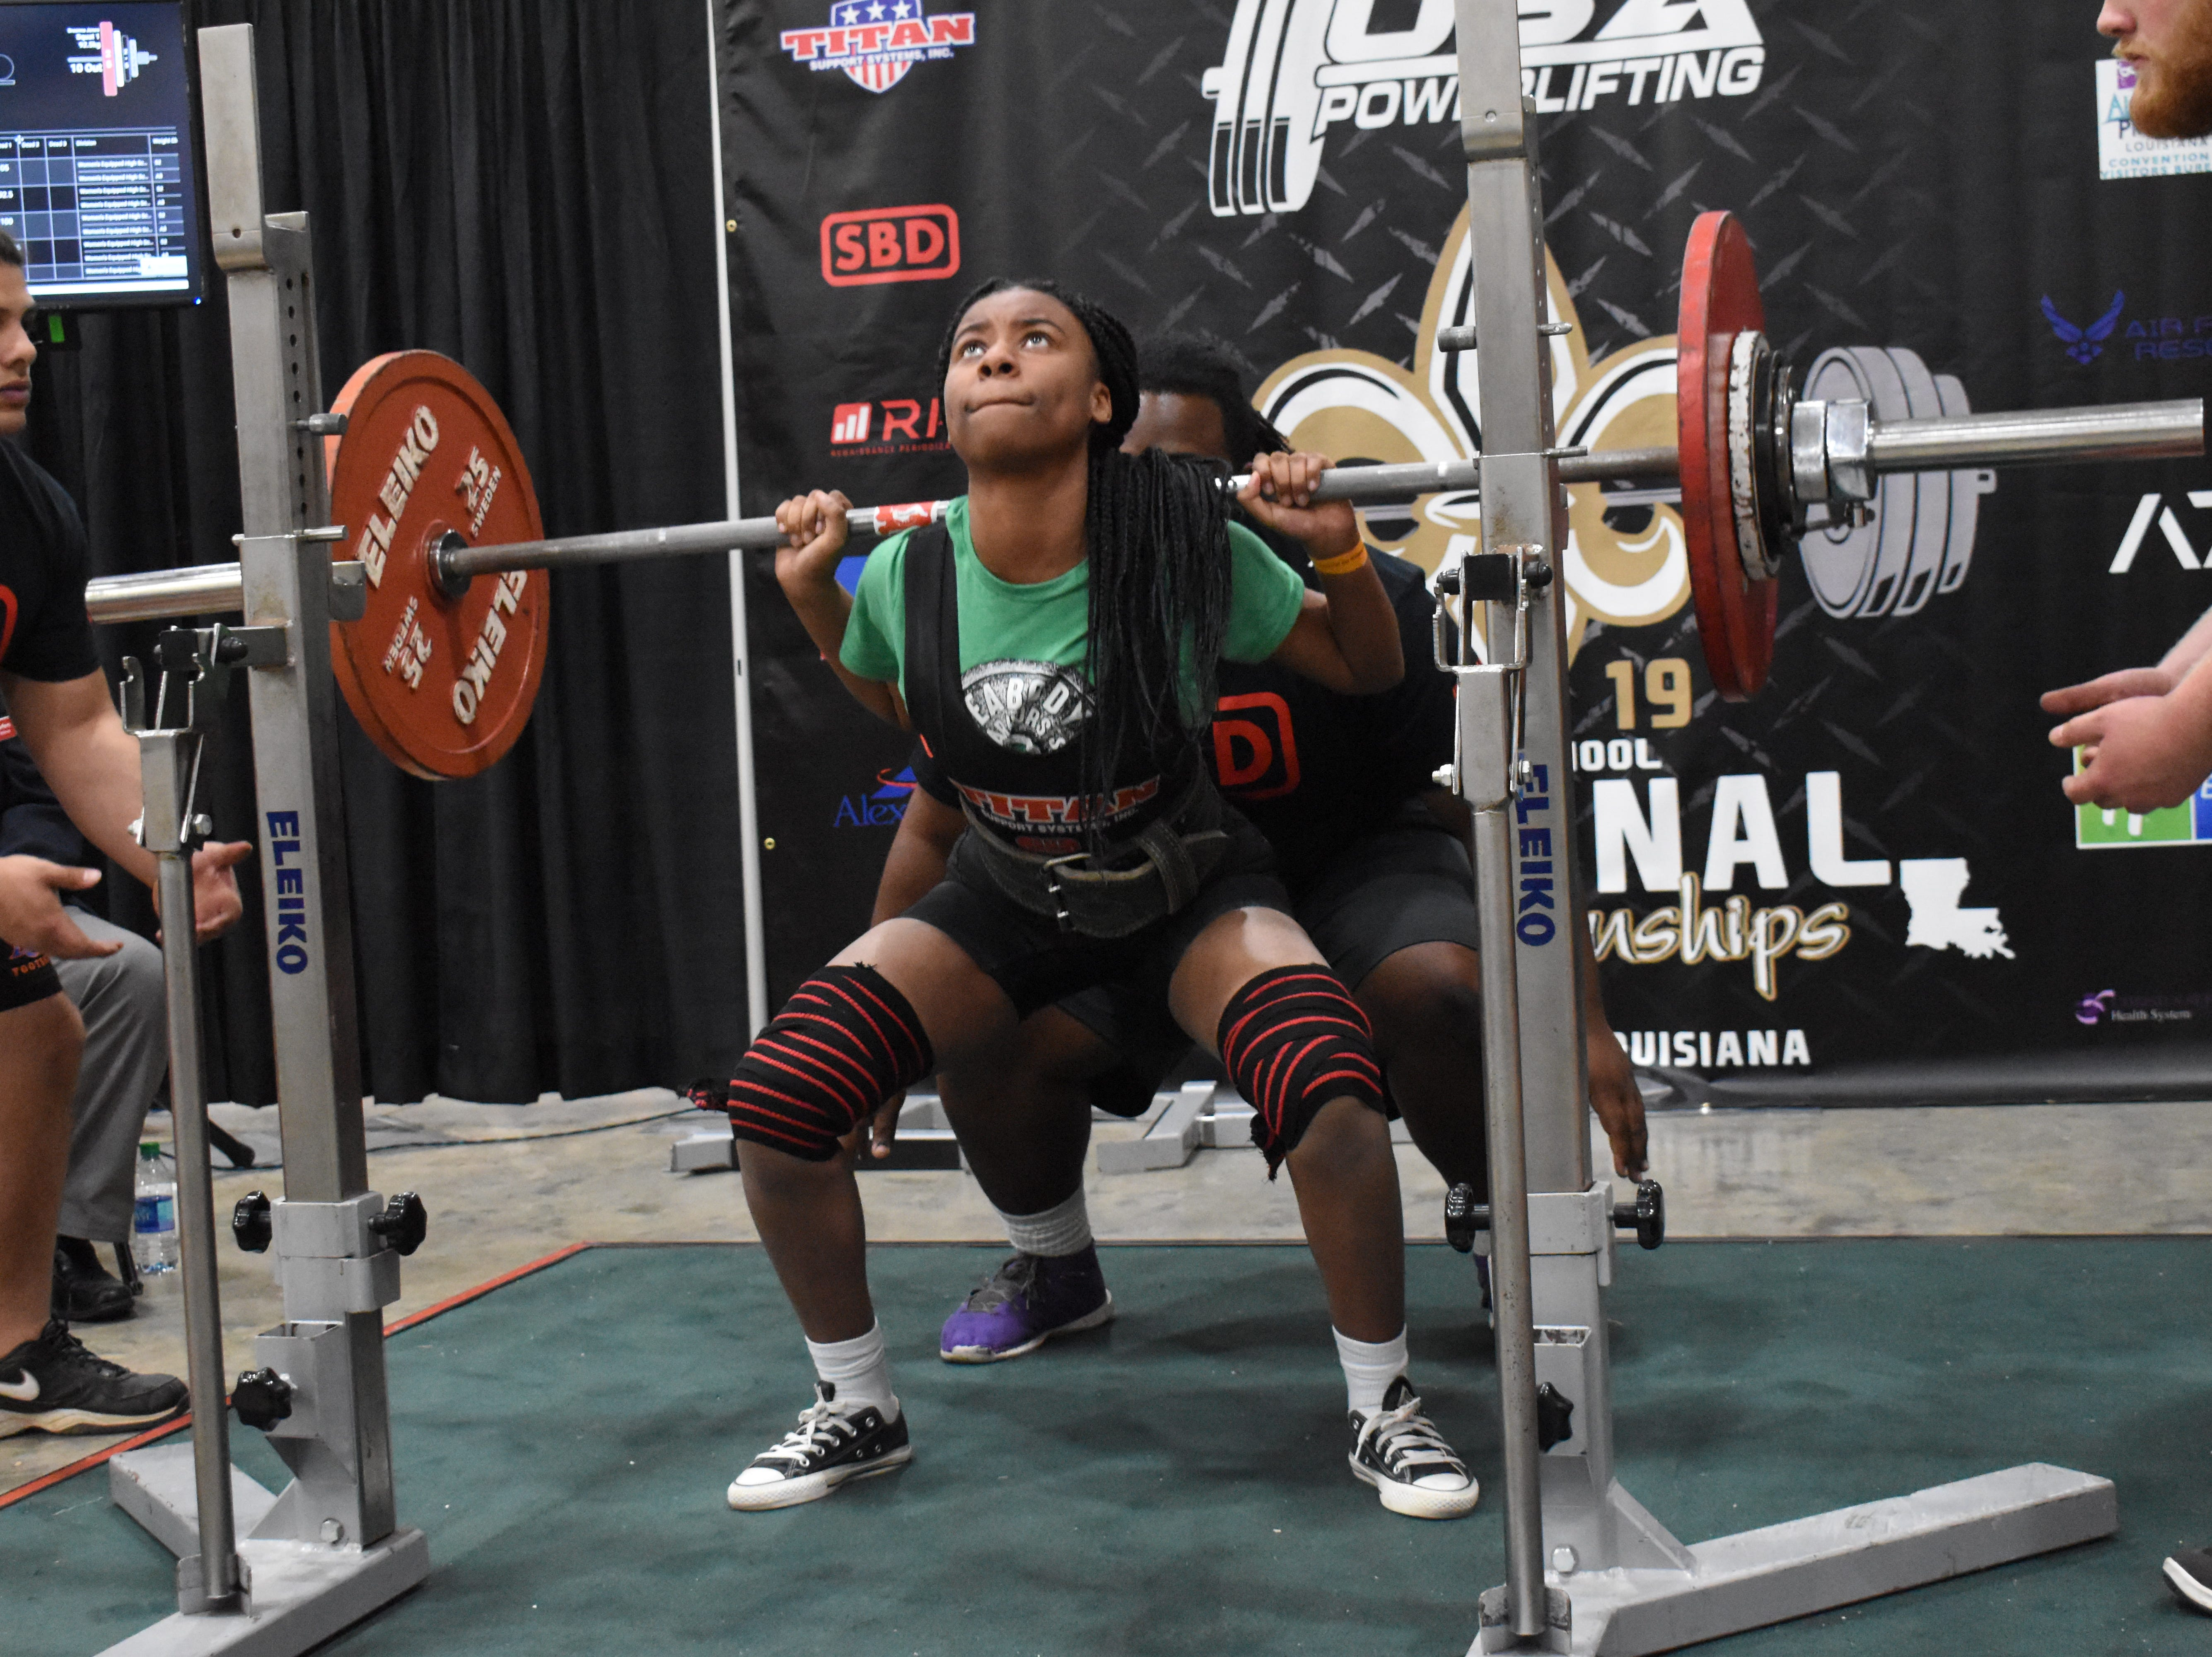 Breanna Jones of Peabody performs a squat in the The USA Powerlifting High School National Championships Friday, March 29, 2019. The championships, equipped and raw, are being held at the Randolph Riverfront Center in downtown Alexandria with high school powerlifters from across the country competing in the four-day event. Powerlifters from local schools are also competing.